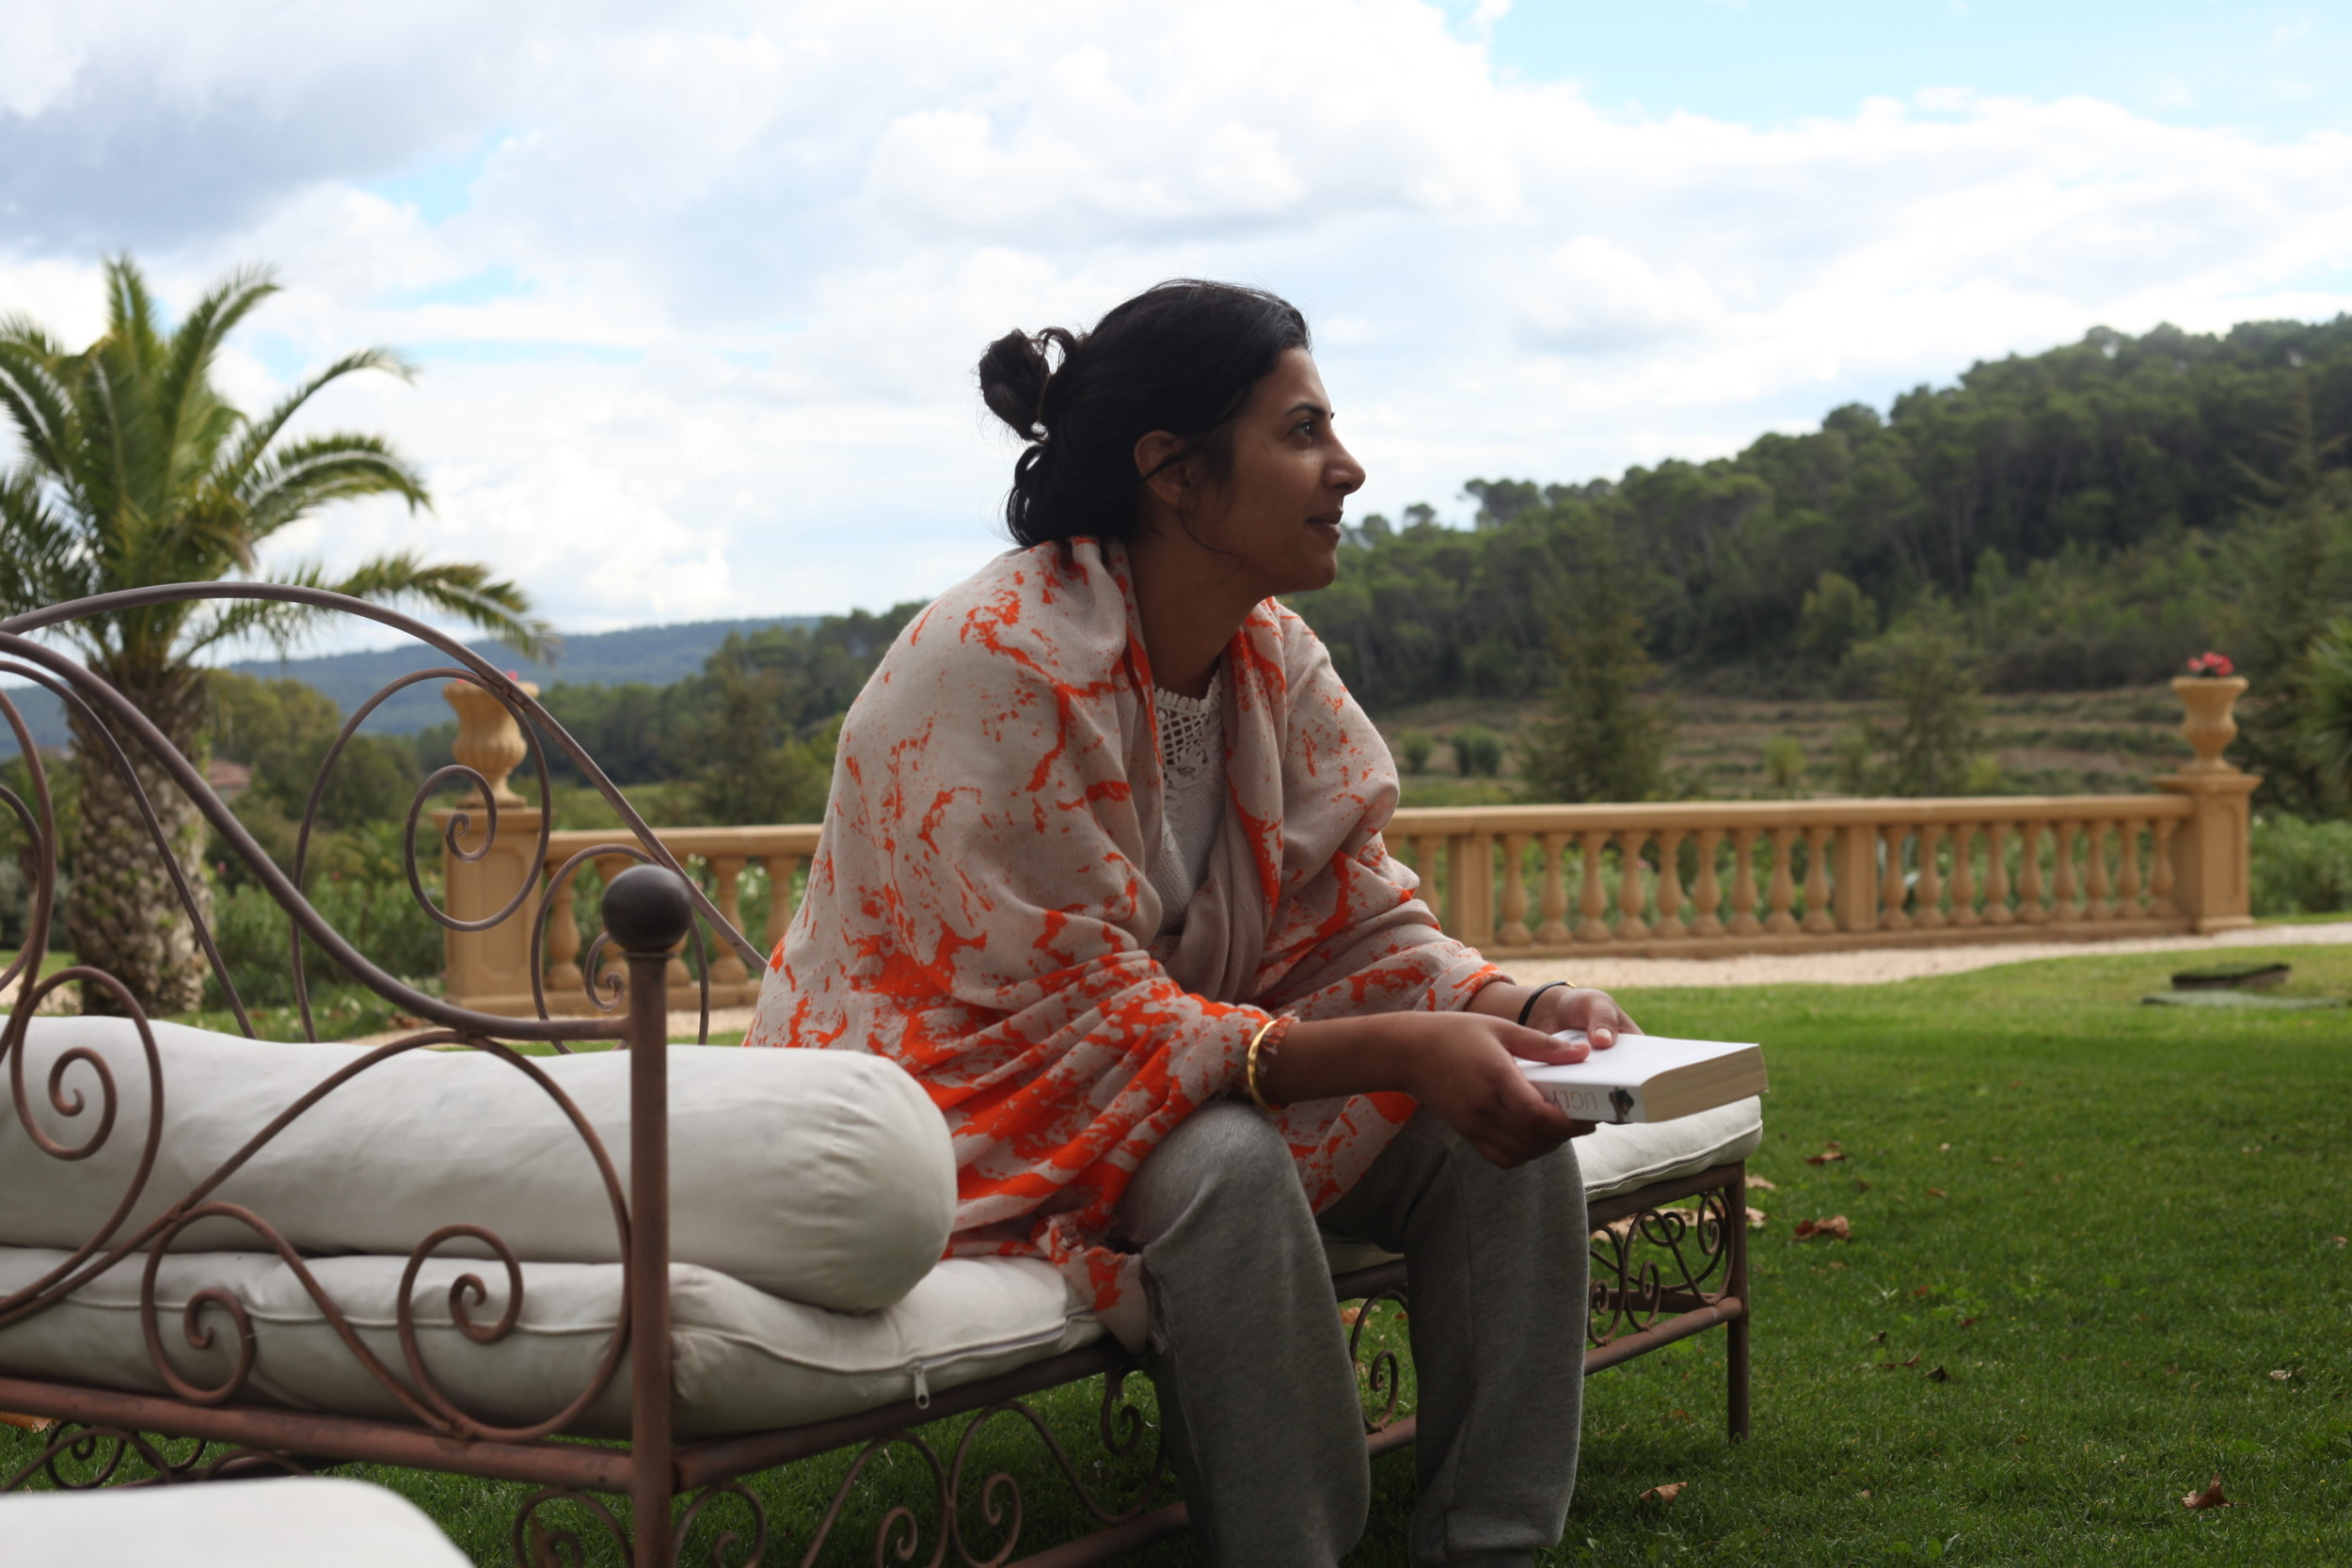 Bhupinder reviews the World's best detox retreat, the world's best yoga retreat and the world's best meditation retreat.